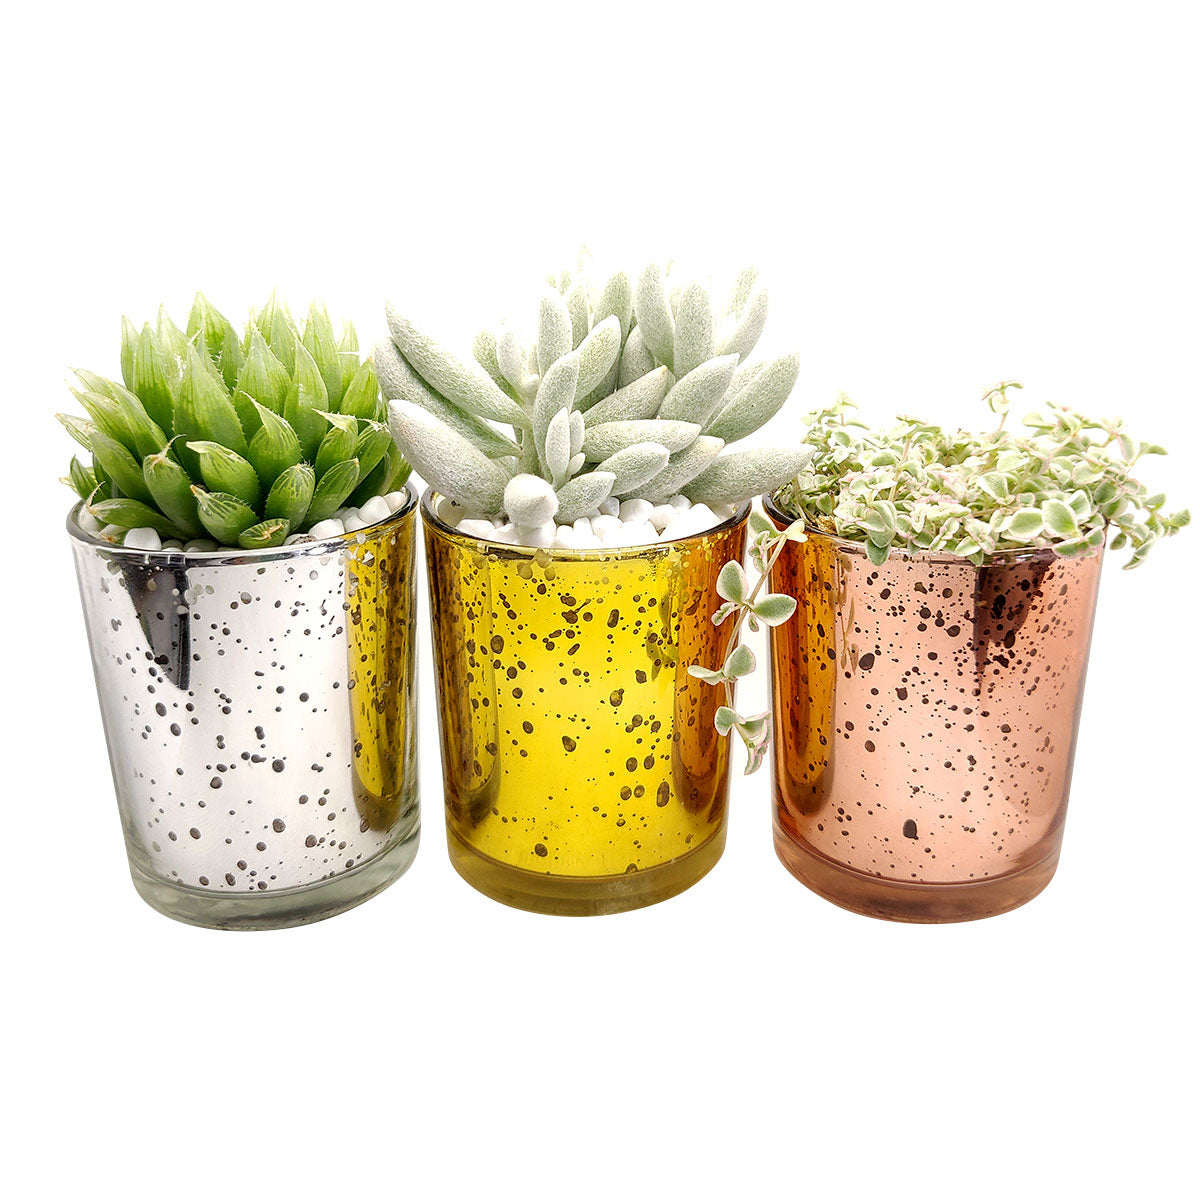 Pot for sale, Mini pot for succulent, Succulent pot decor ideas, Gold sparkly pot, Flower pot for sale, glass pots for planting, succulent gift for holiday